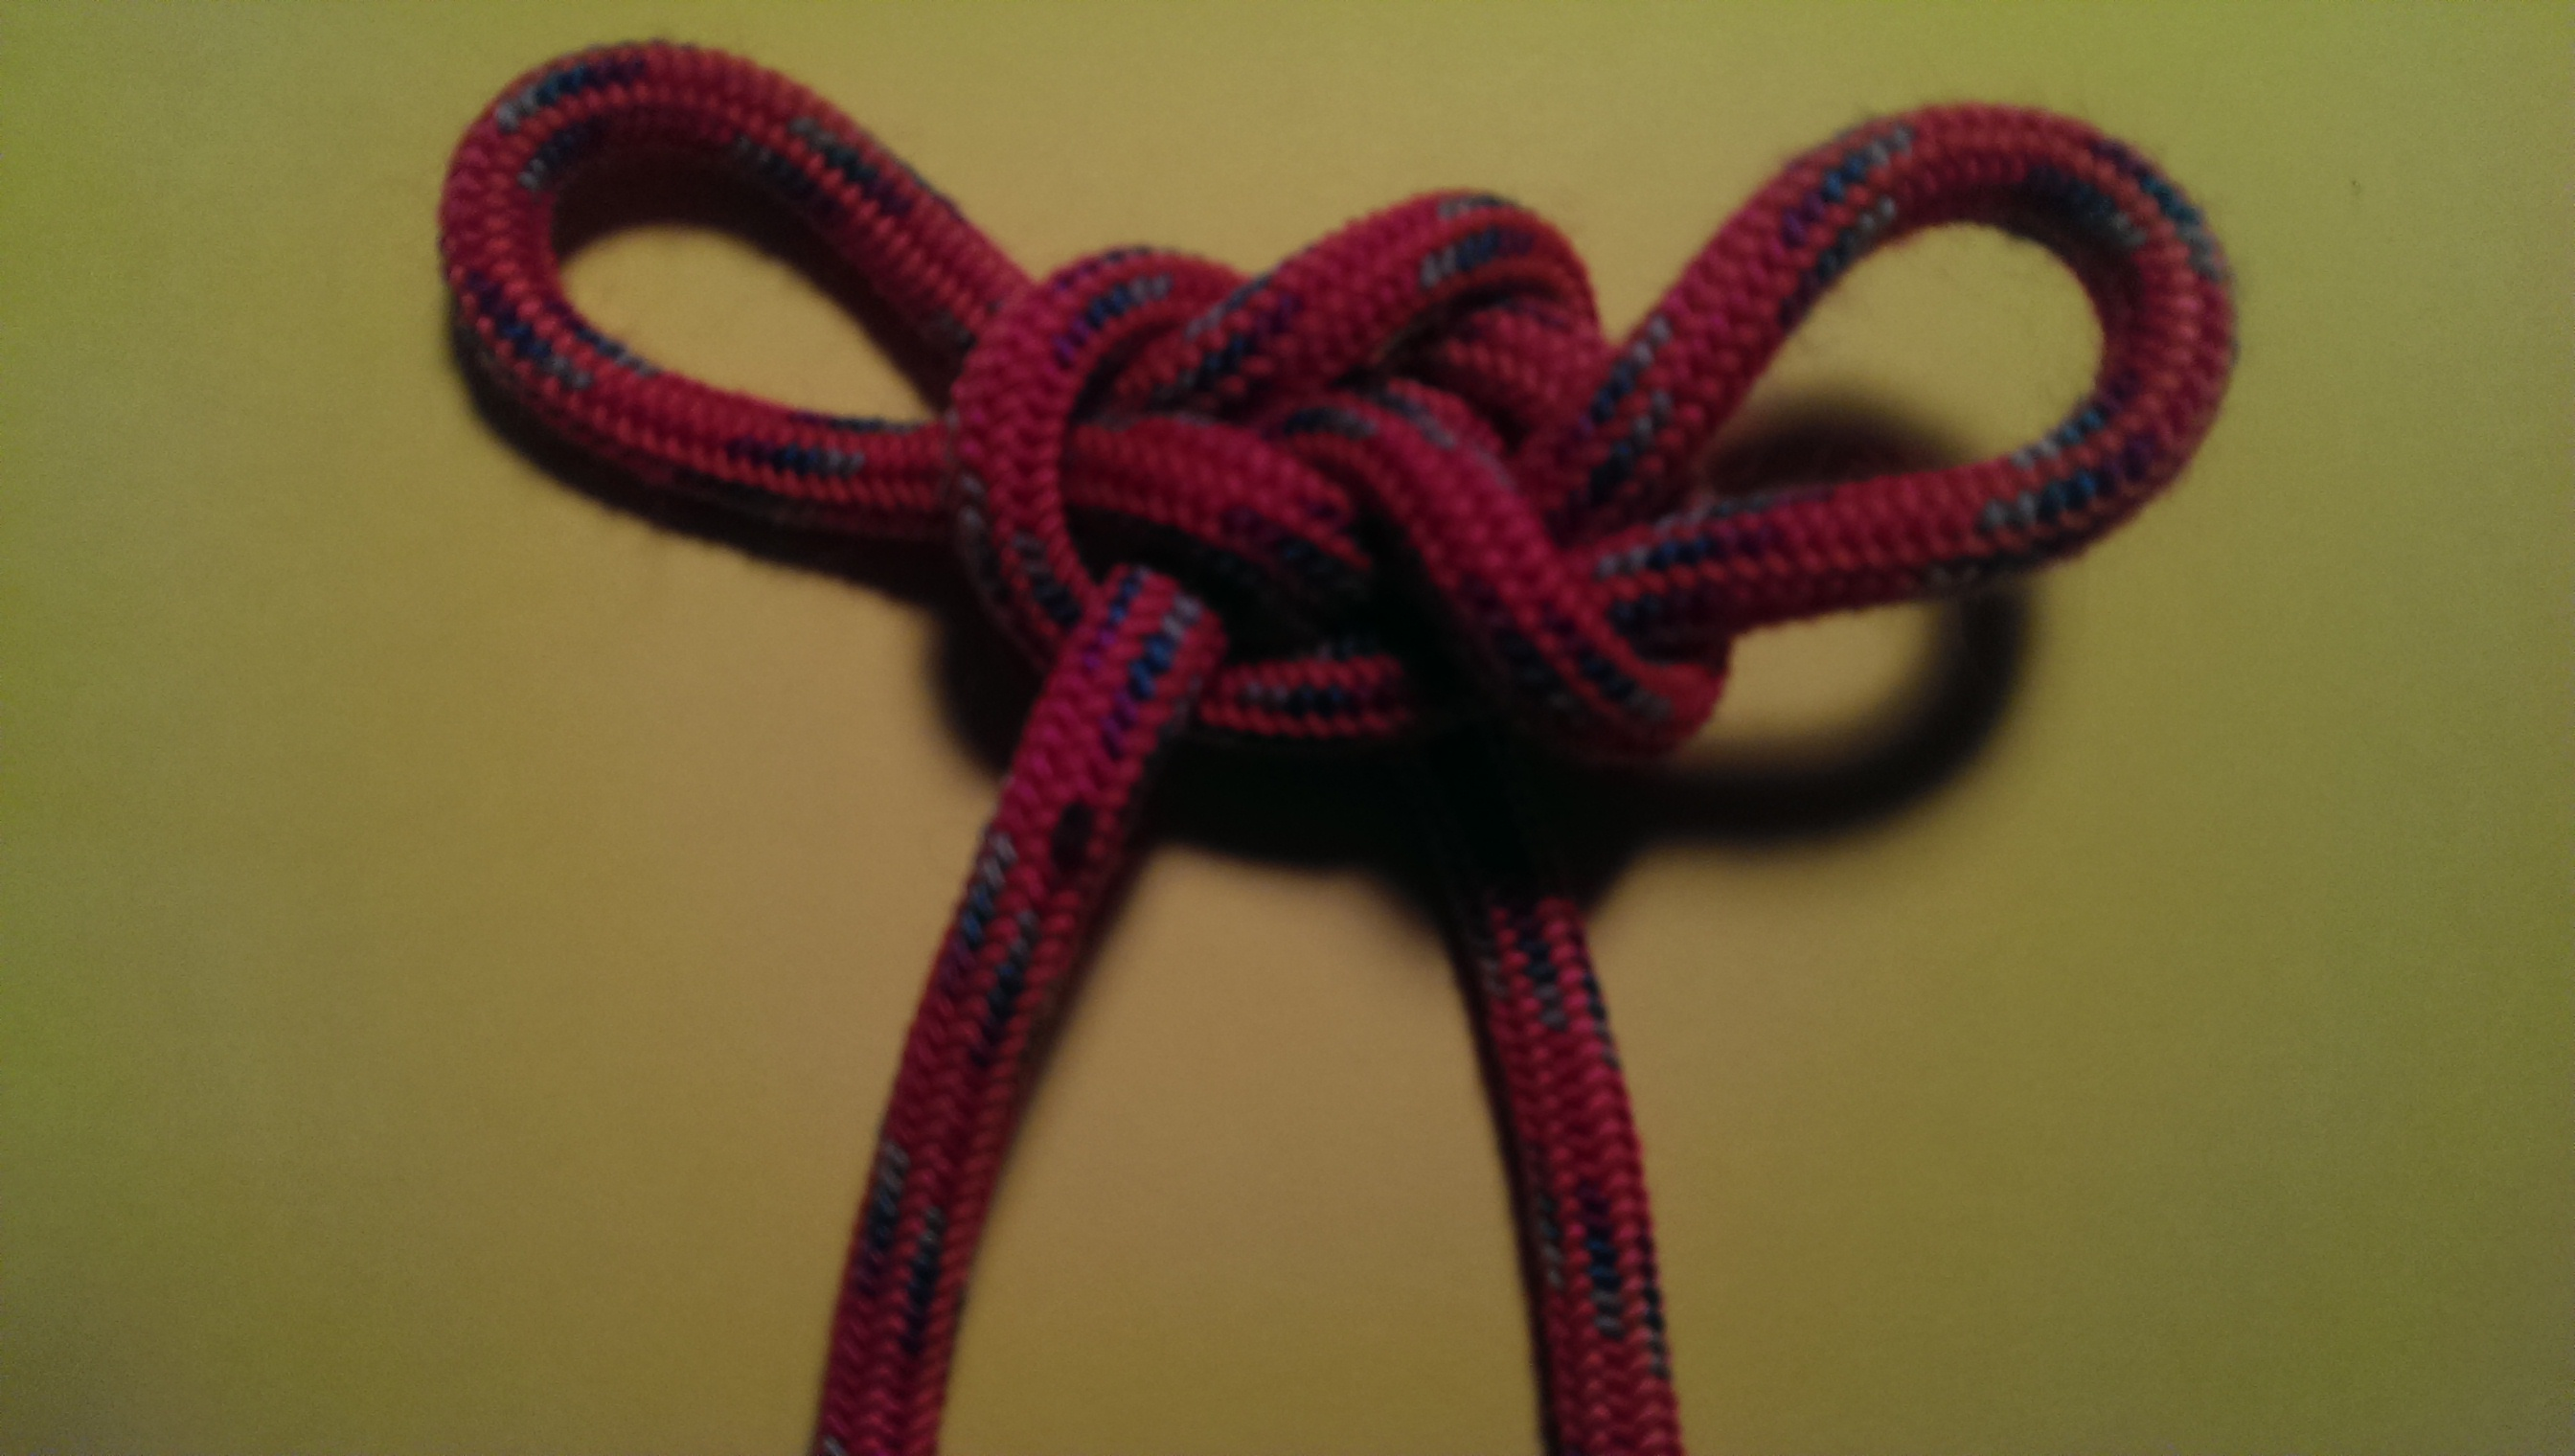 decorative knots with 550 cord - HD 2688×1520